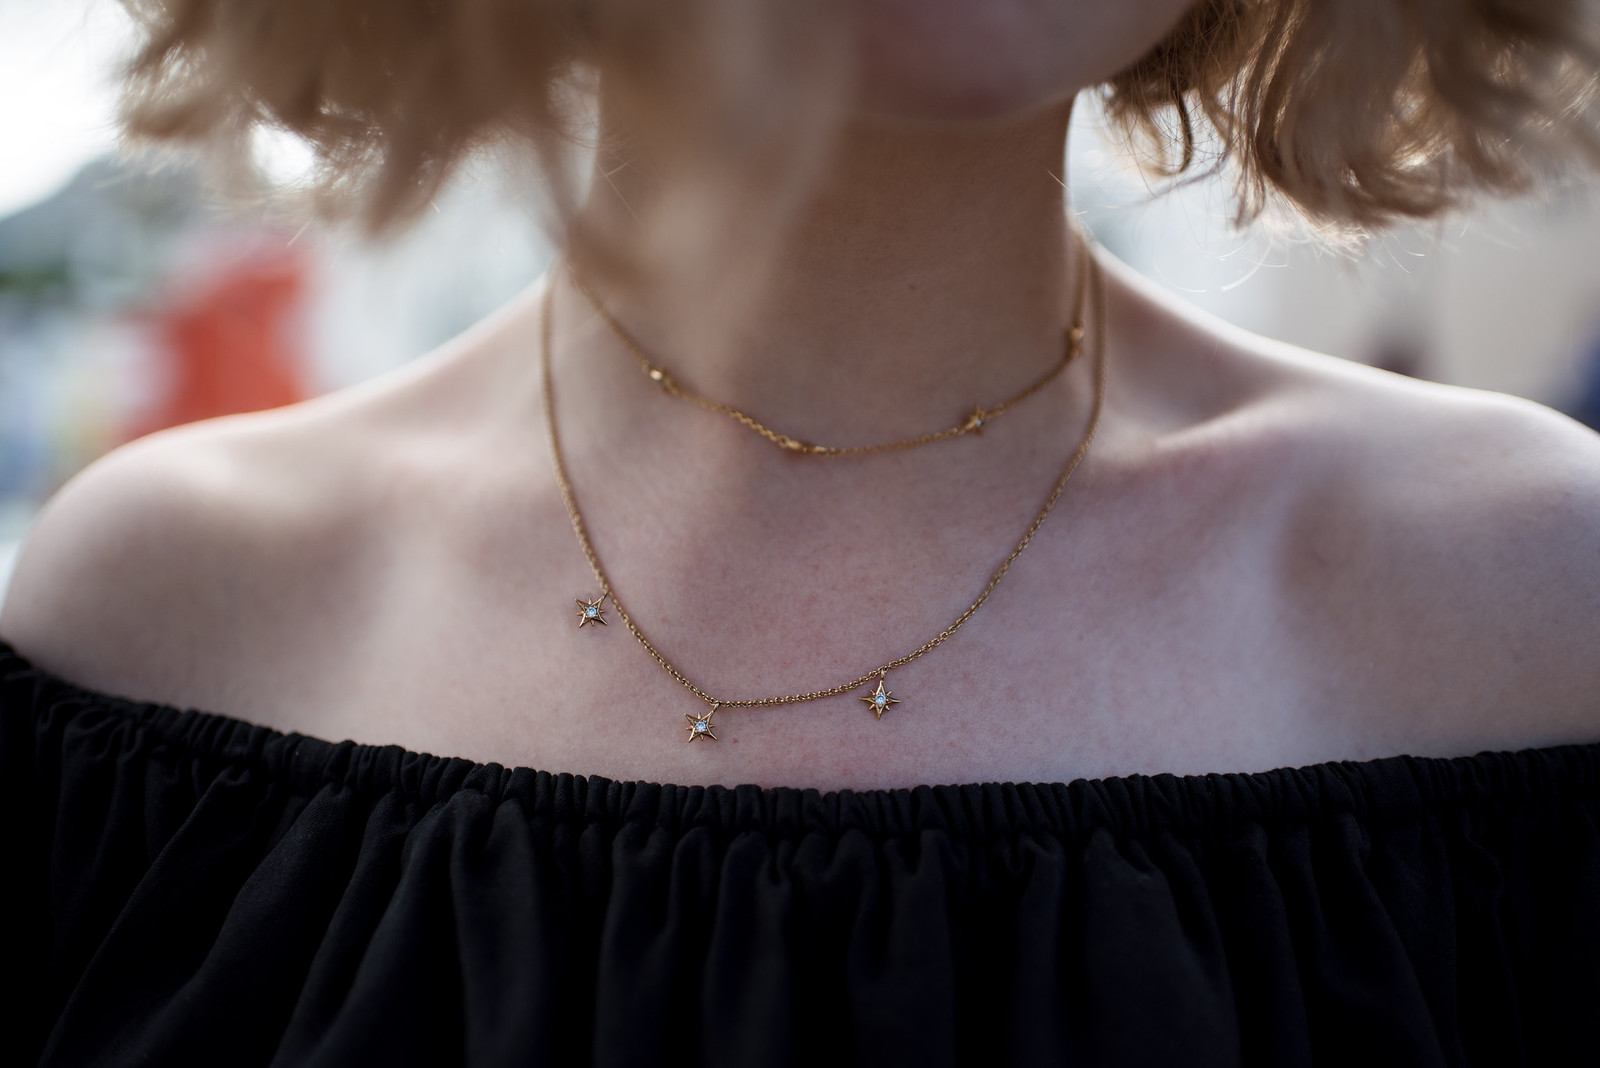 Necklaces by Five and Two on juliettelaura.blogspot.com